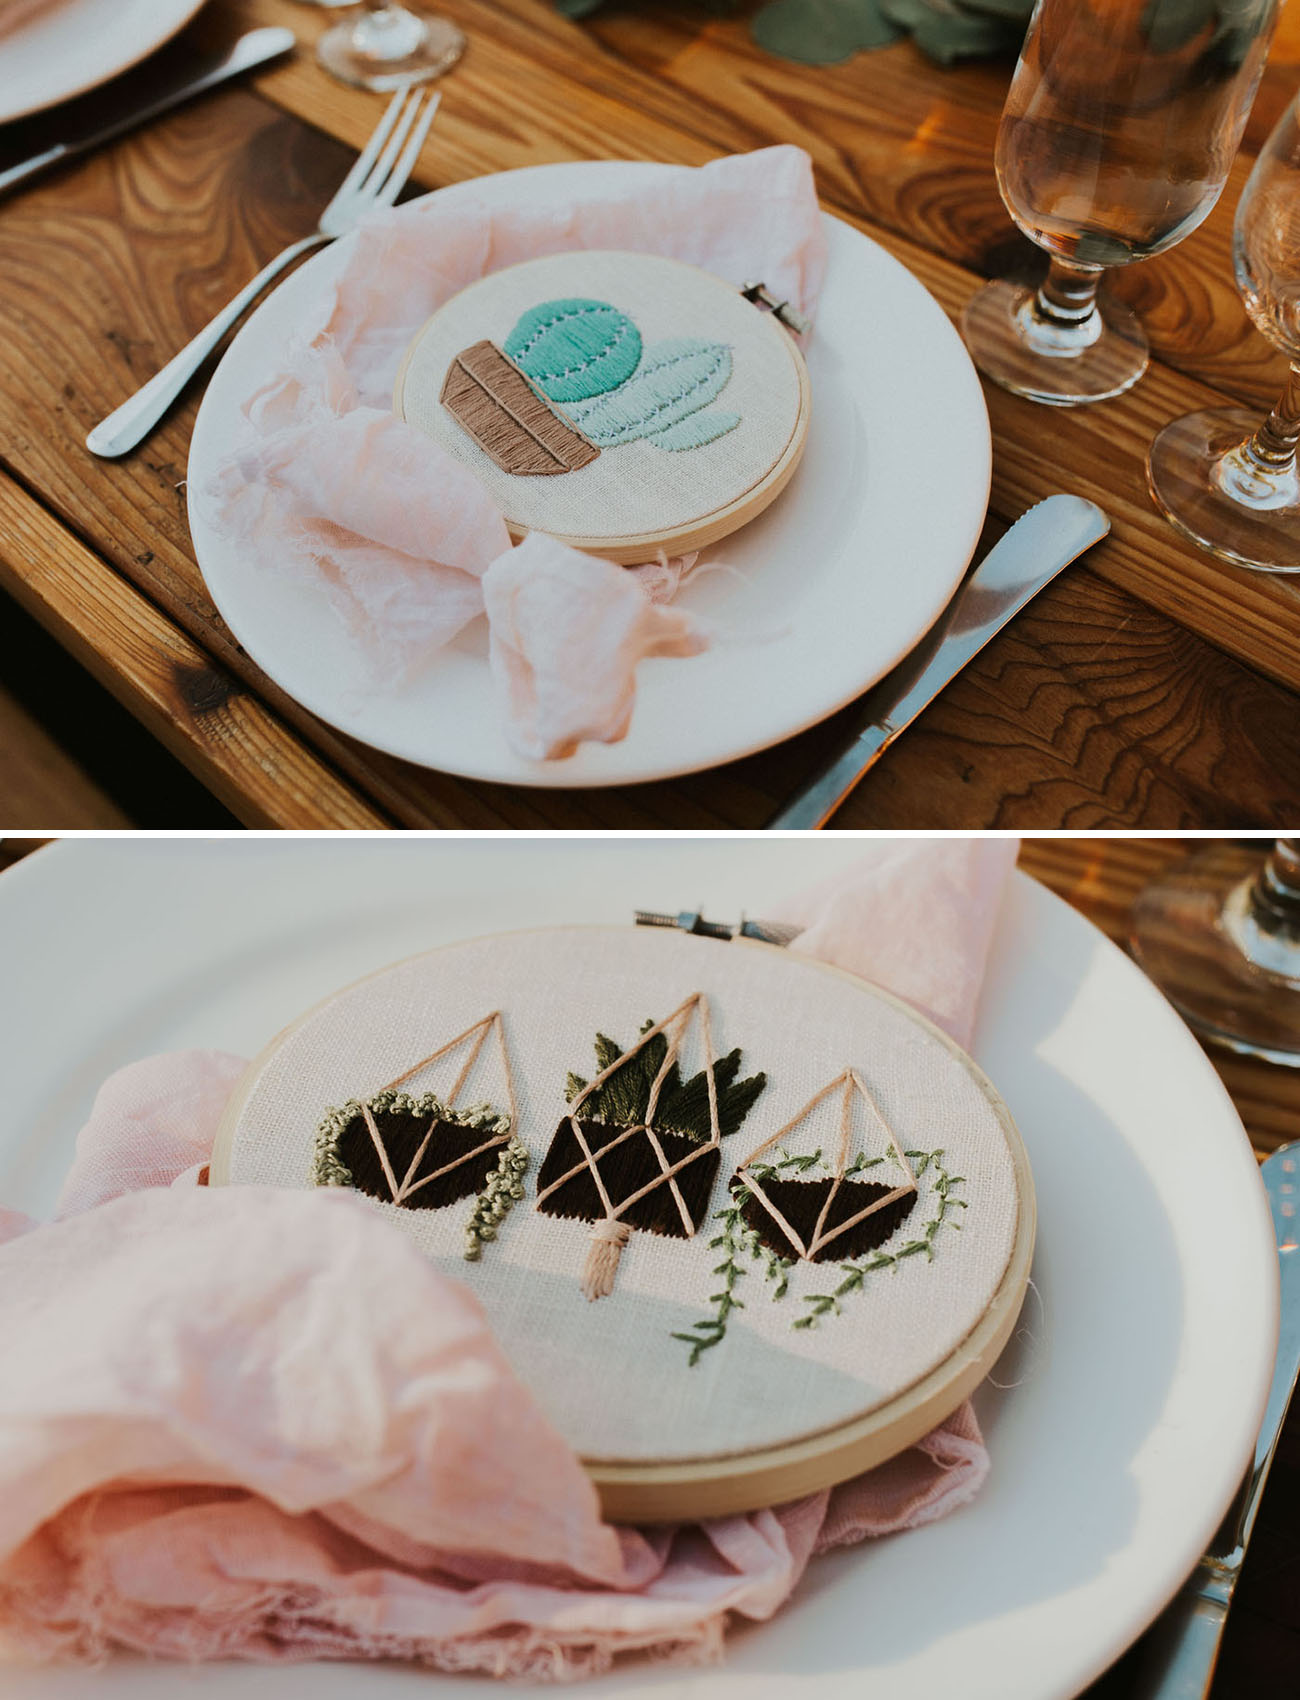 These cute favors were embroidered by the bride herself